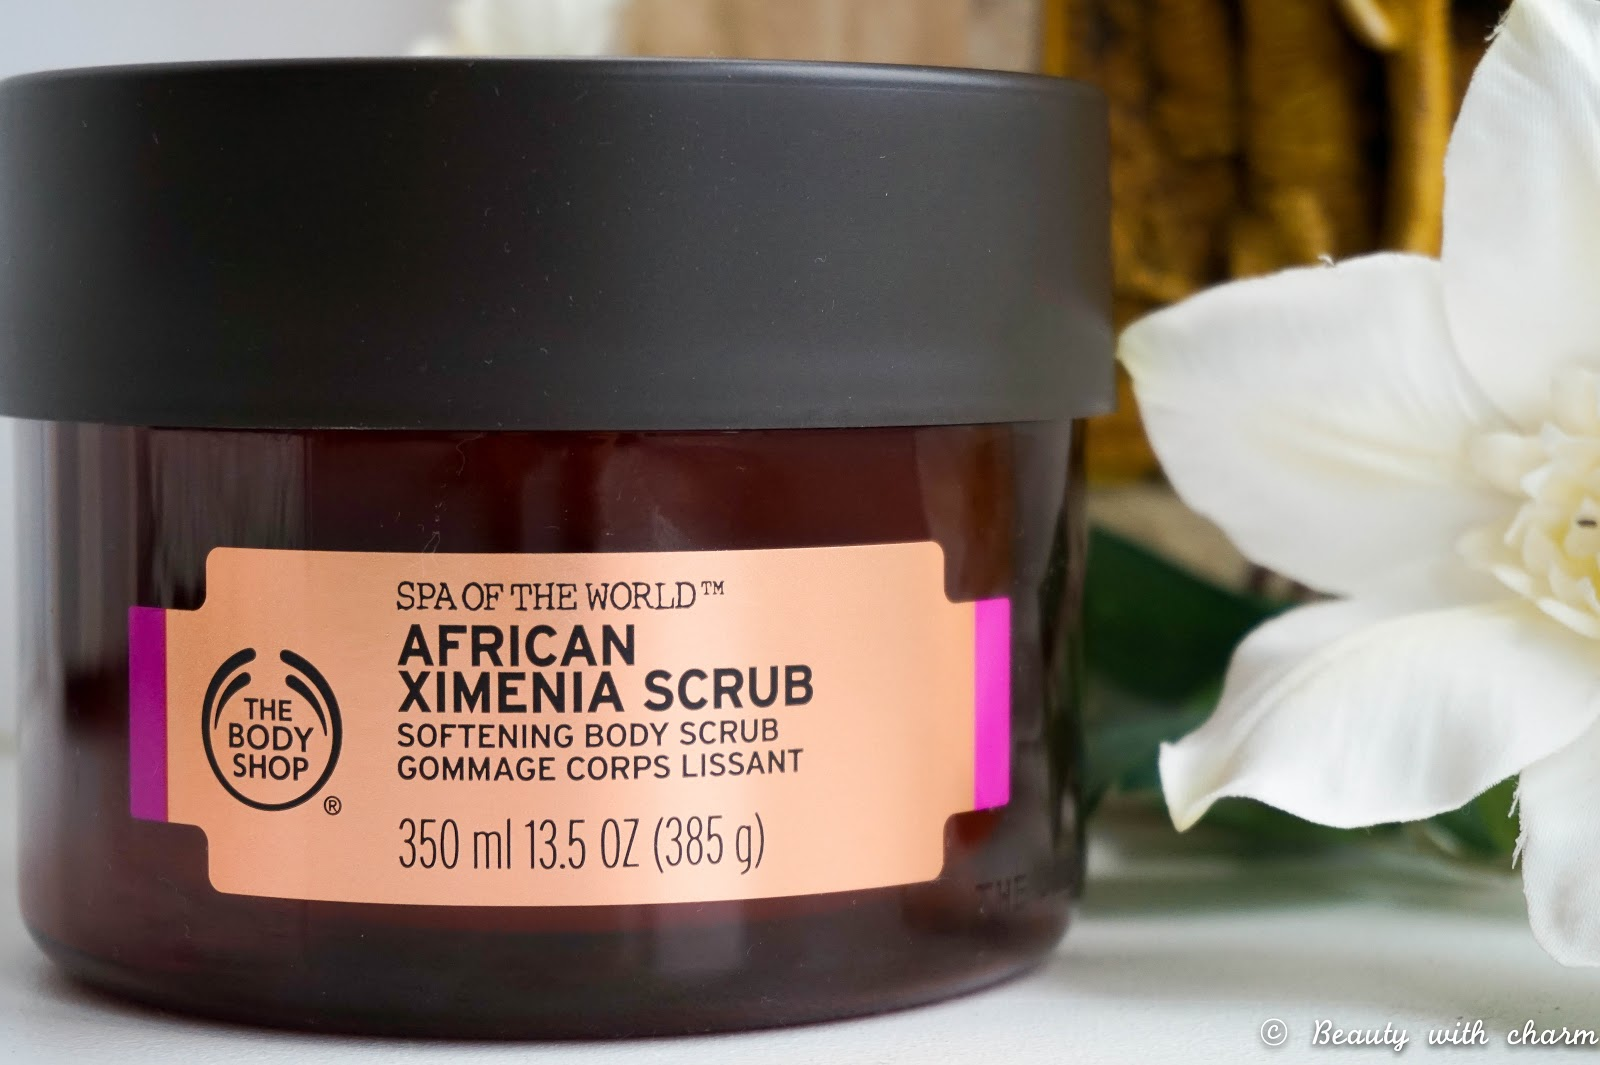 The Body Shop Spa Of The World, African Ximenia Scrub